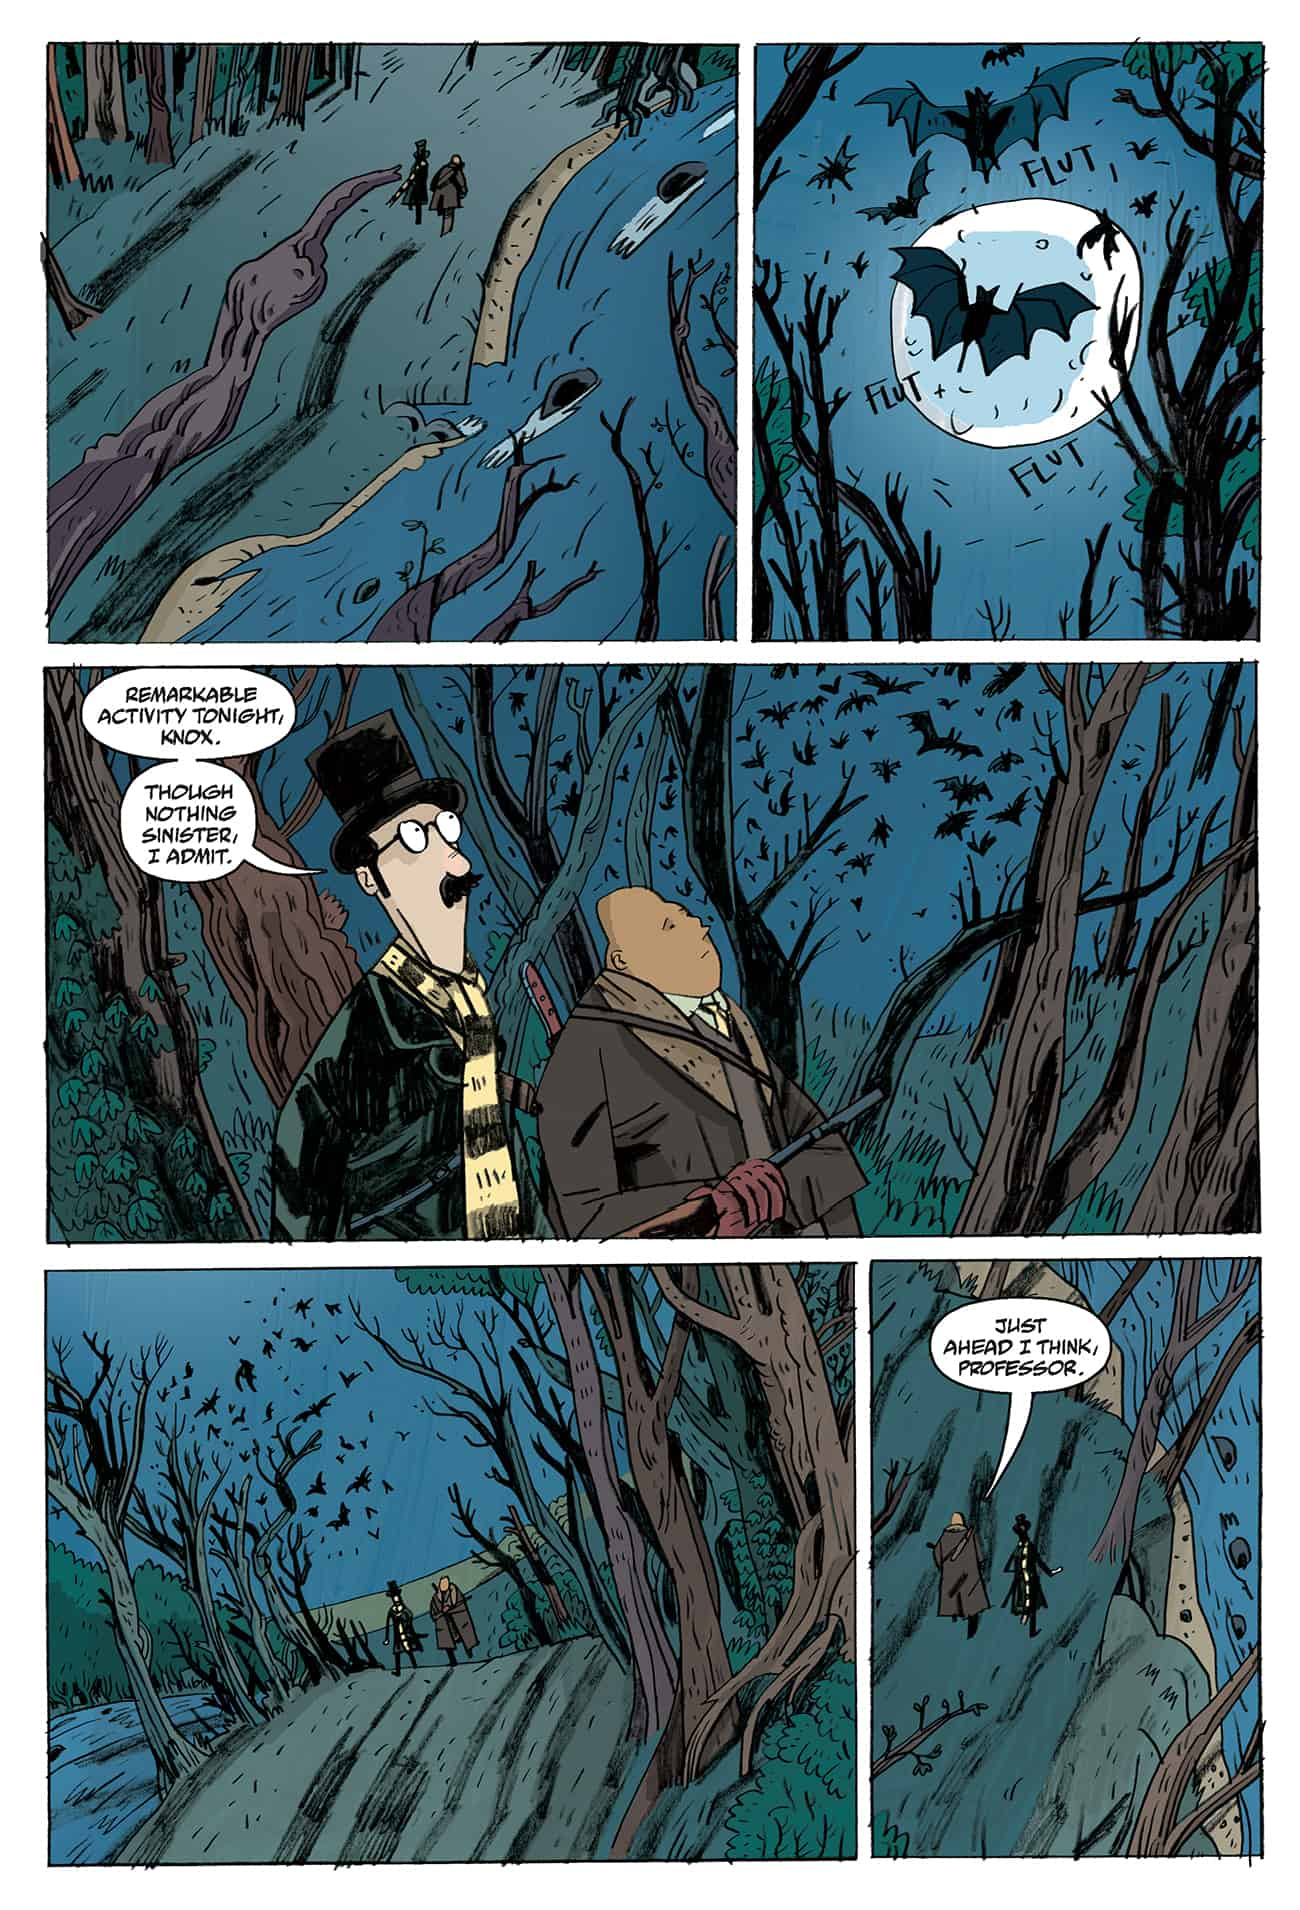 OEWE BLACKWATER PG 04 - Exclusive Preview of OUR ENCOUNTERS WITH EVIL by Mike Mignola & Warwick Johnson-Cadwell